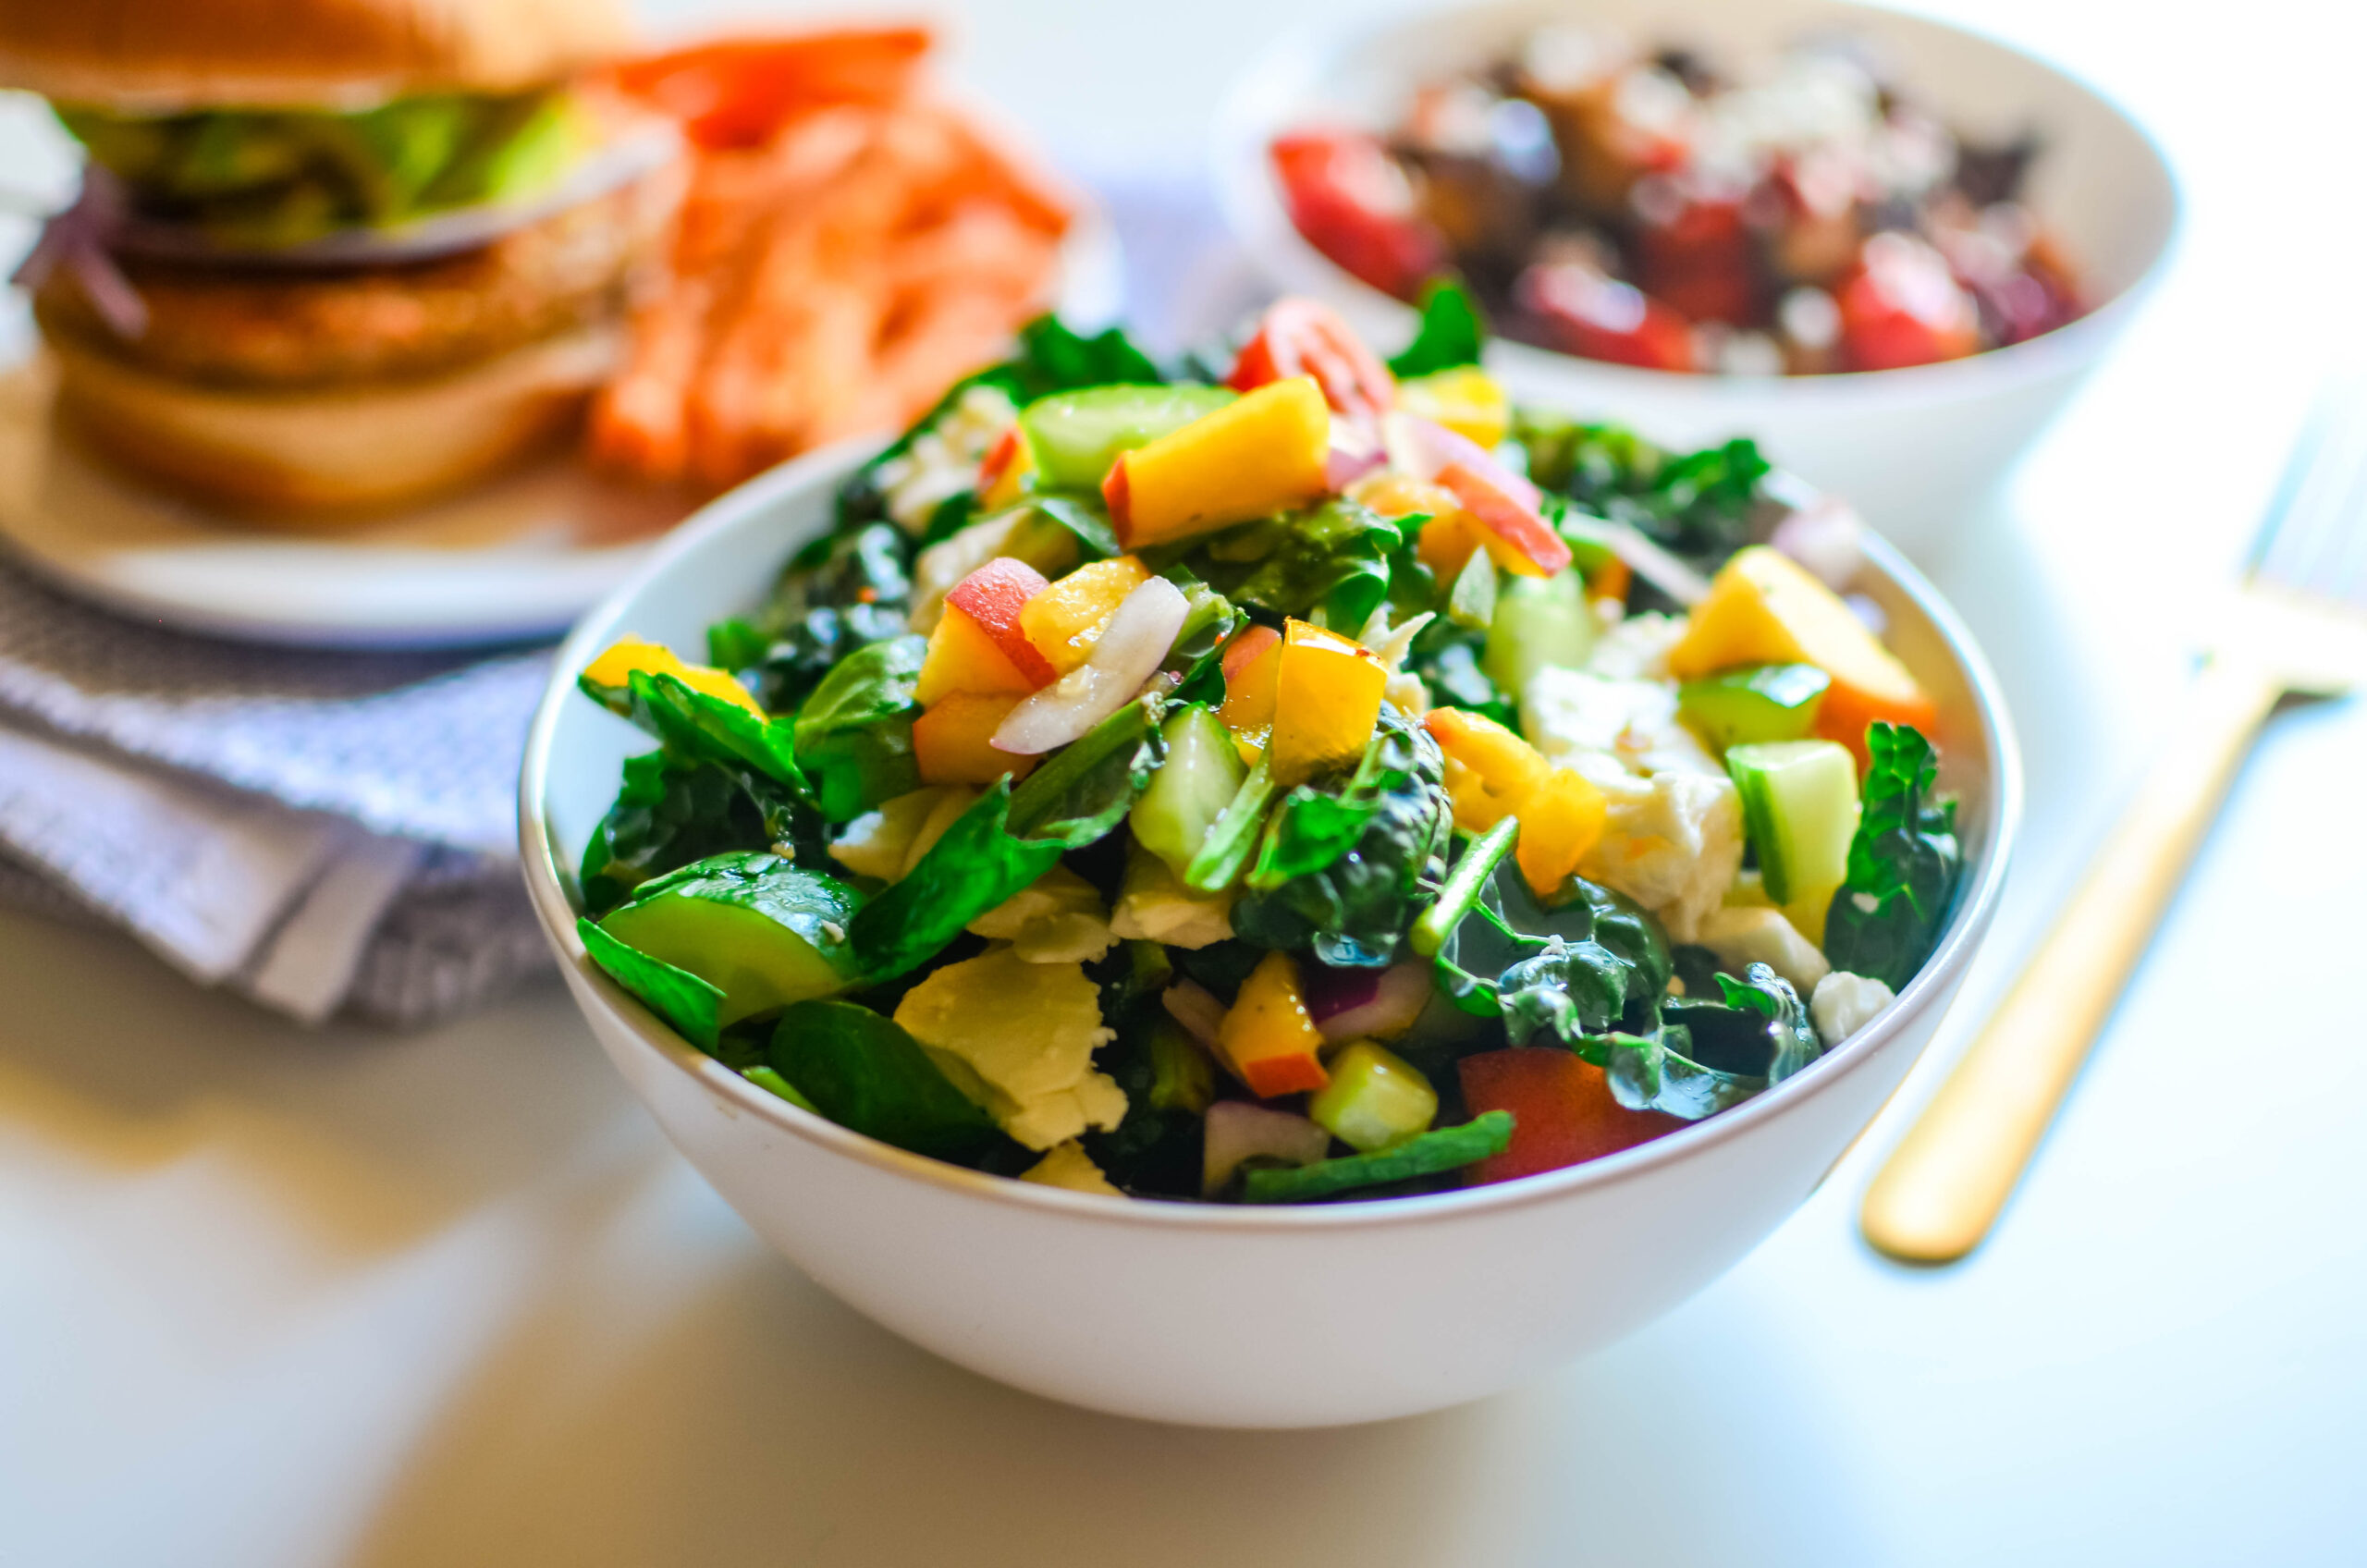 Kale Peach Salad with Citrus Herb Vinaigrette